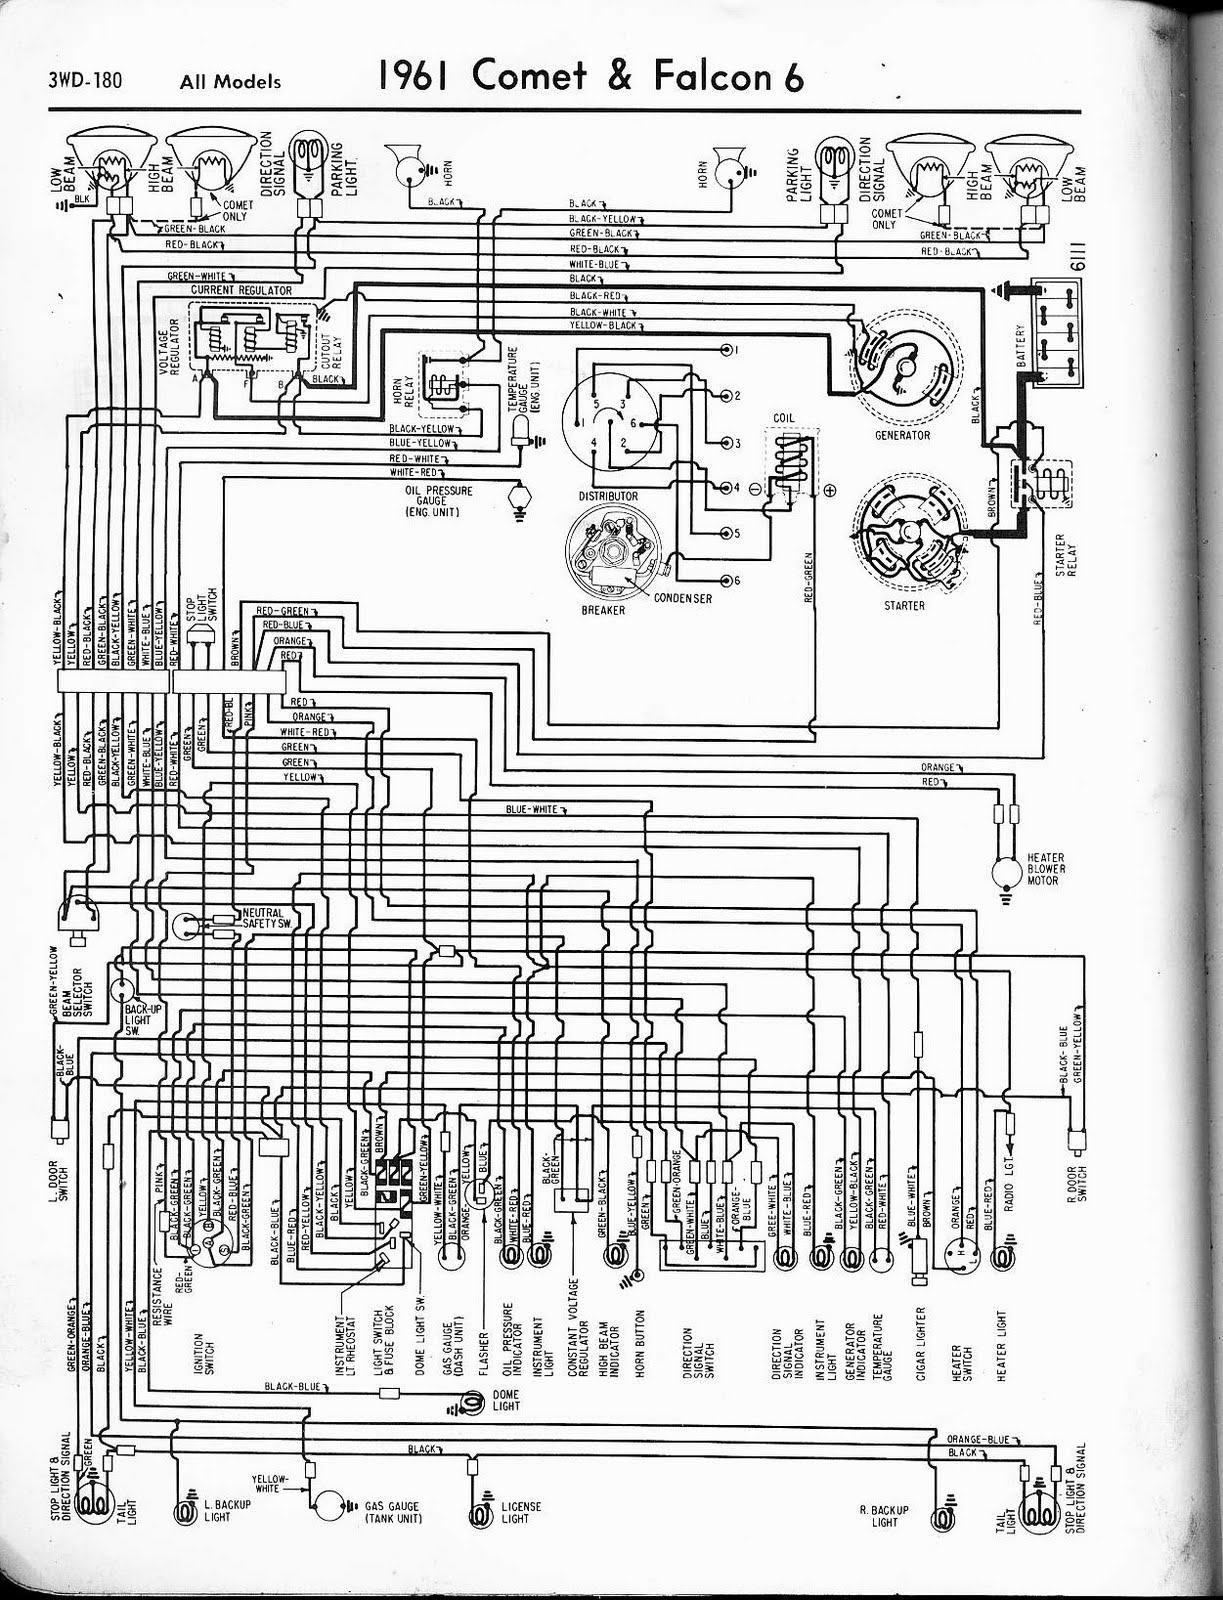 map northern ontario 4 additionally  additionally  in addition  also 2012 06 24 182643 2002 siverado starting circuit also  also  together with  additionally maxresdefault further 2010 mini cooper fuse diagram car electrical wiring of tempest likewise . on plymouth wiring harness diagram for free